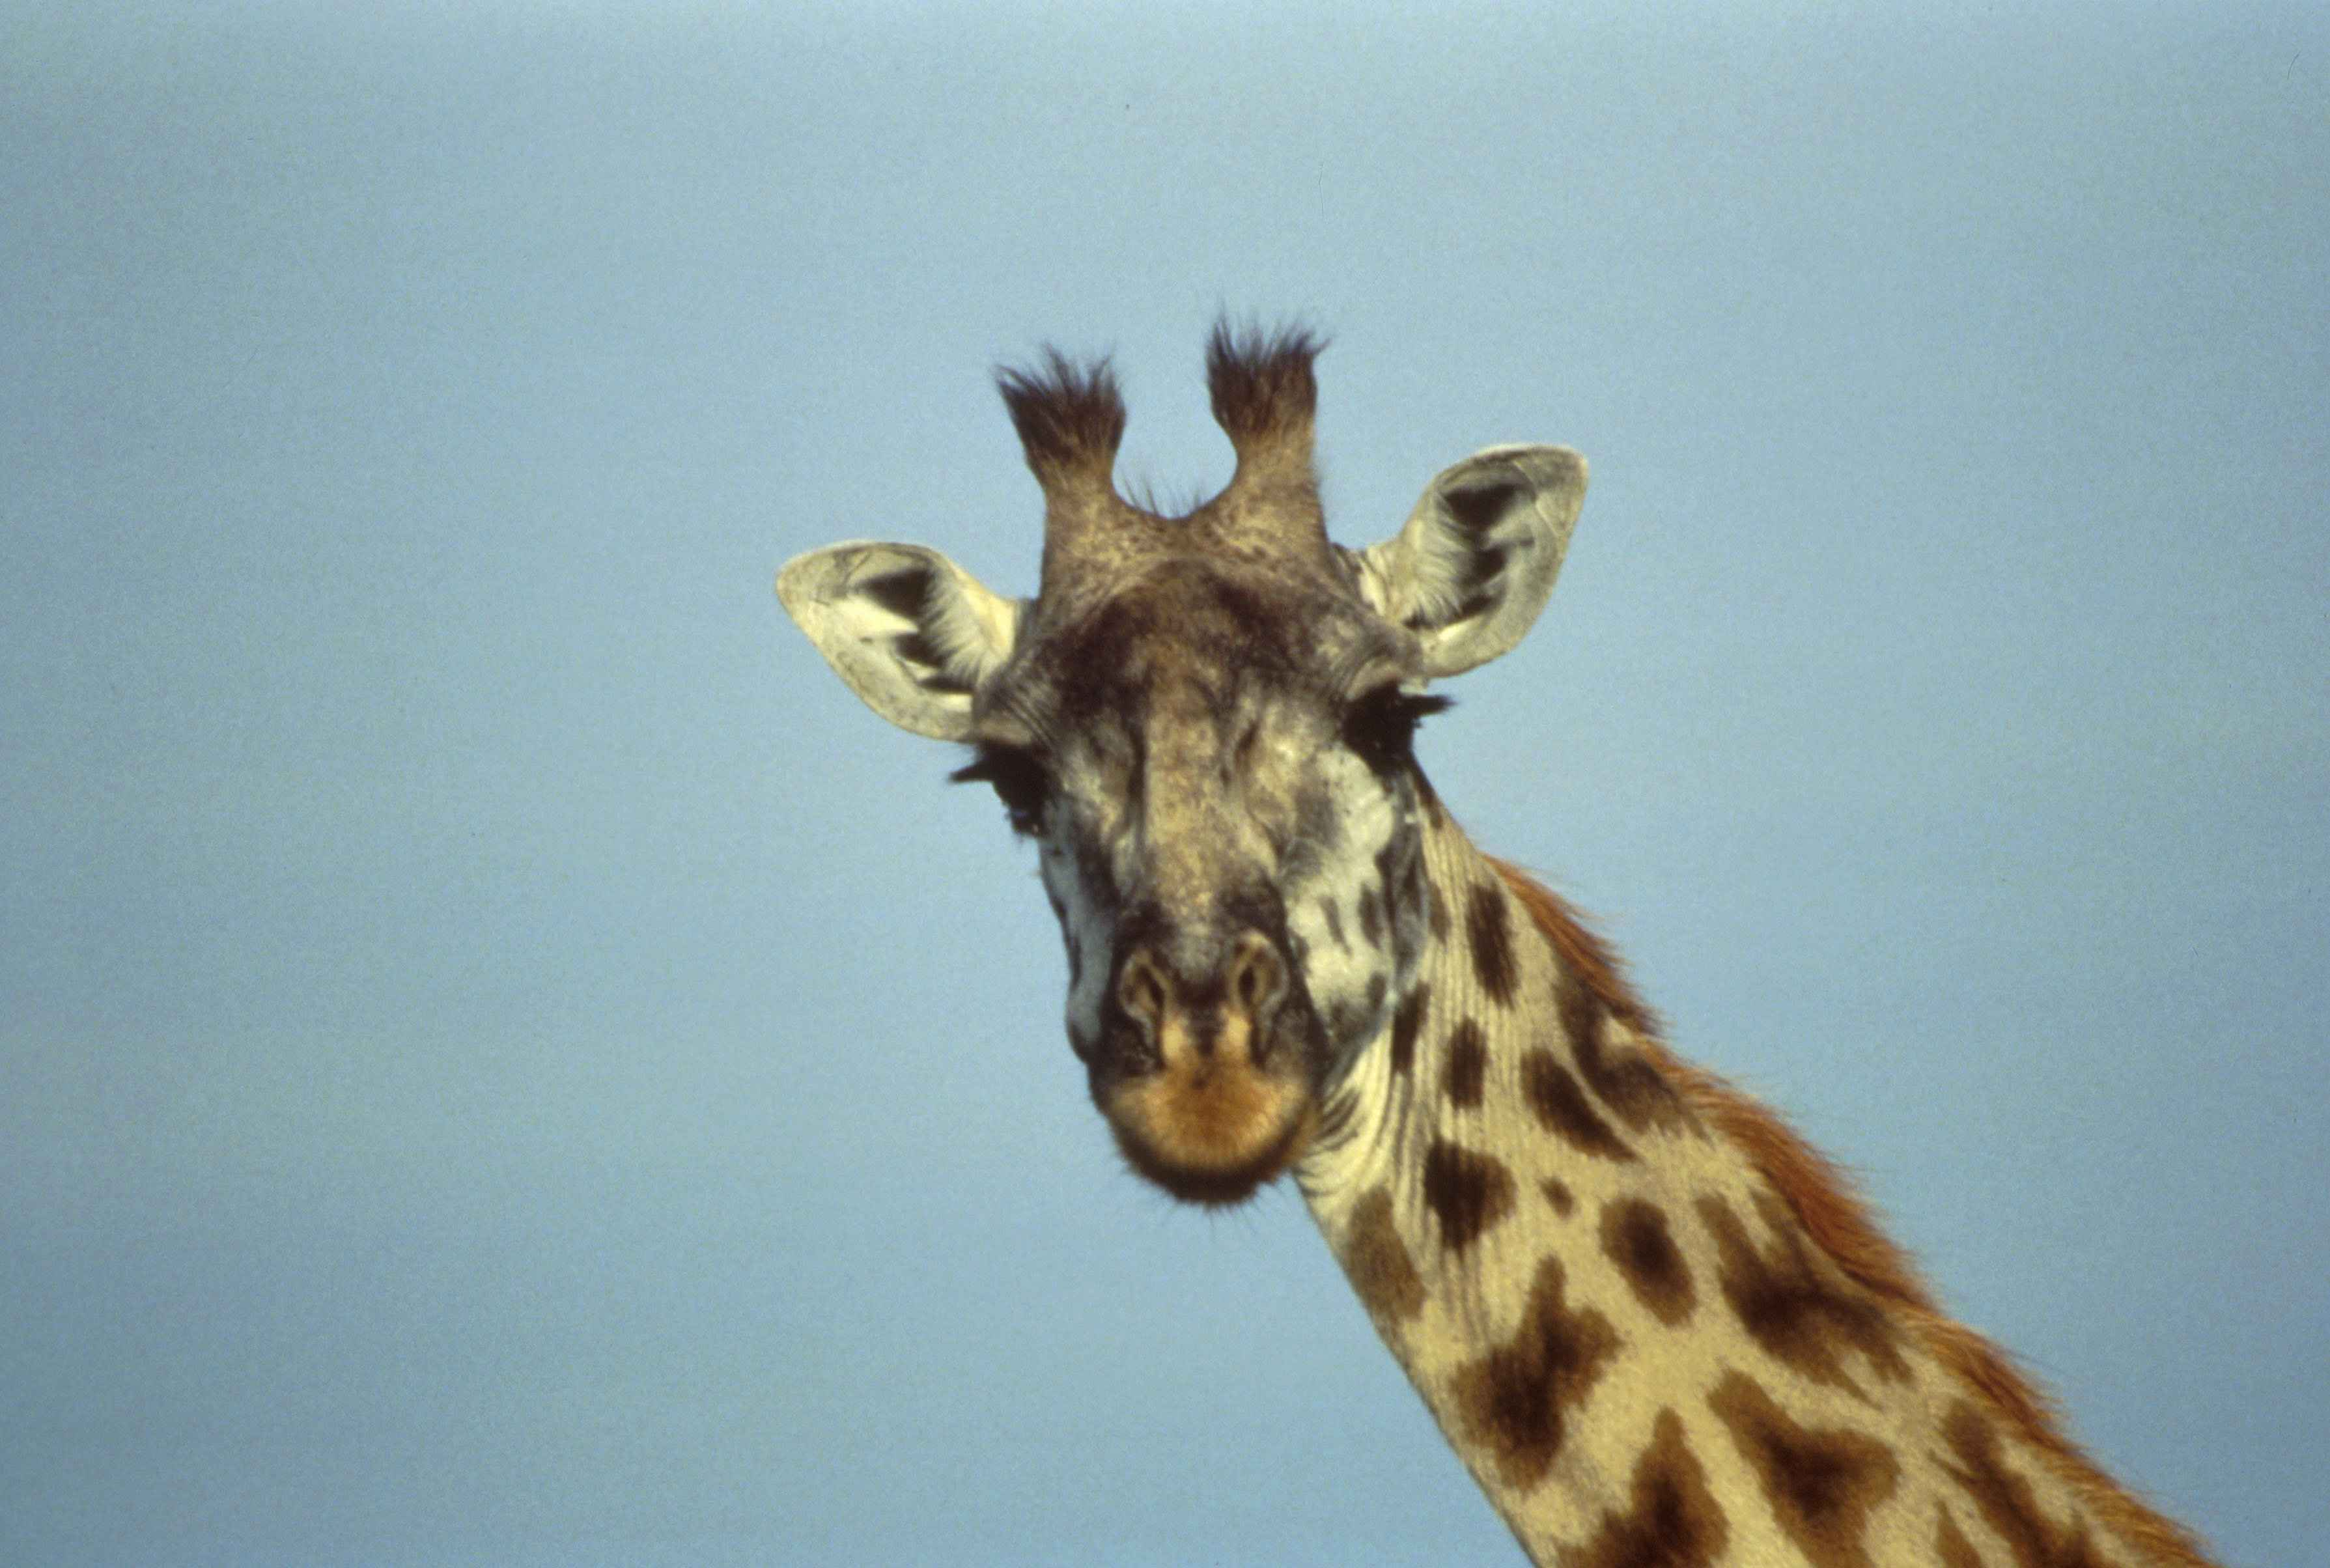 Giraffe head close up - photo#5